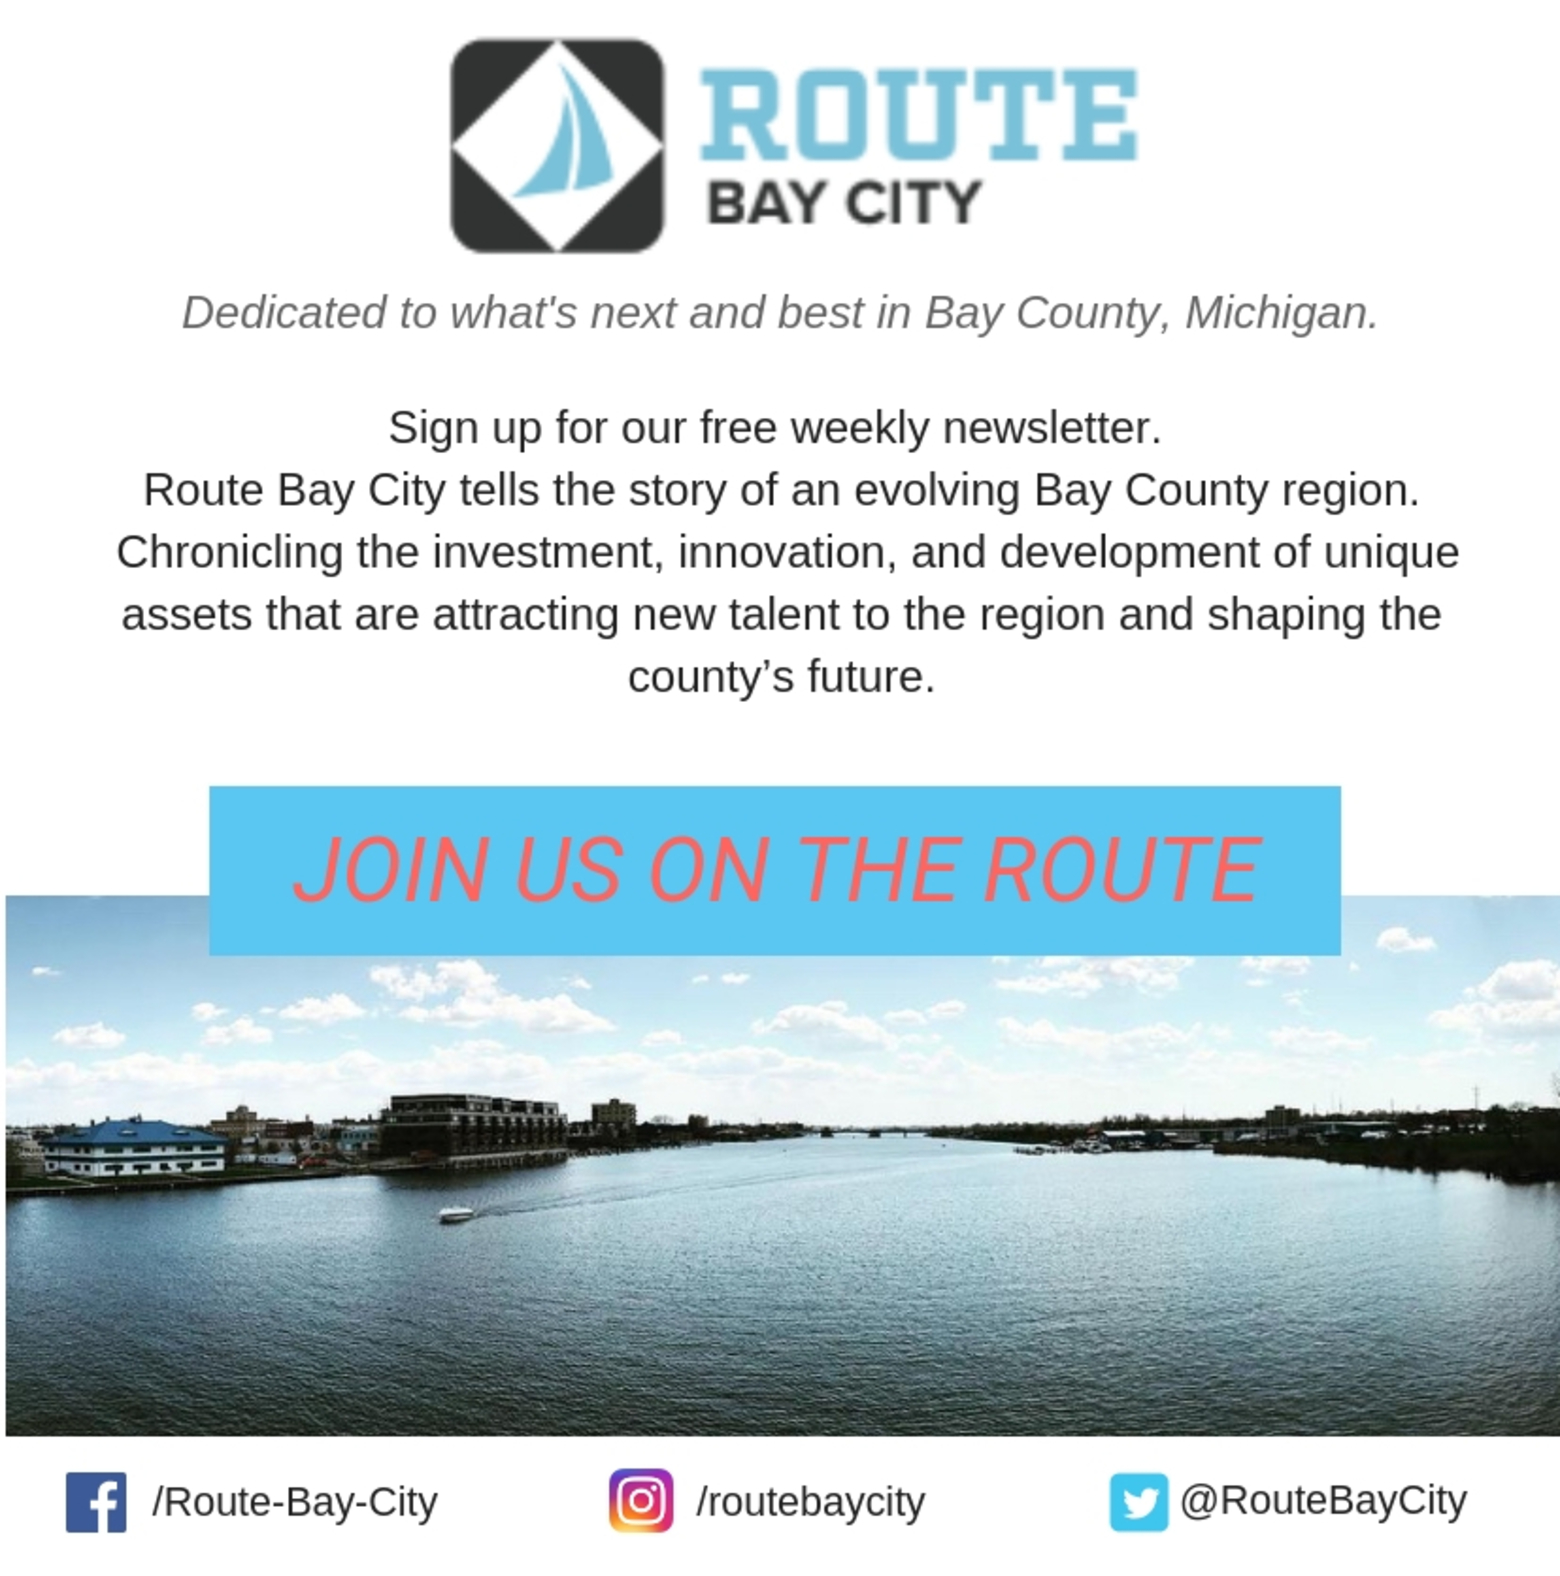 Route Bay City